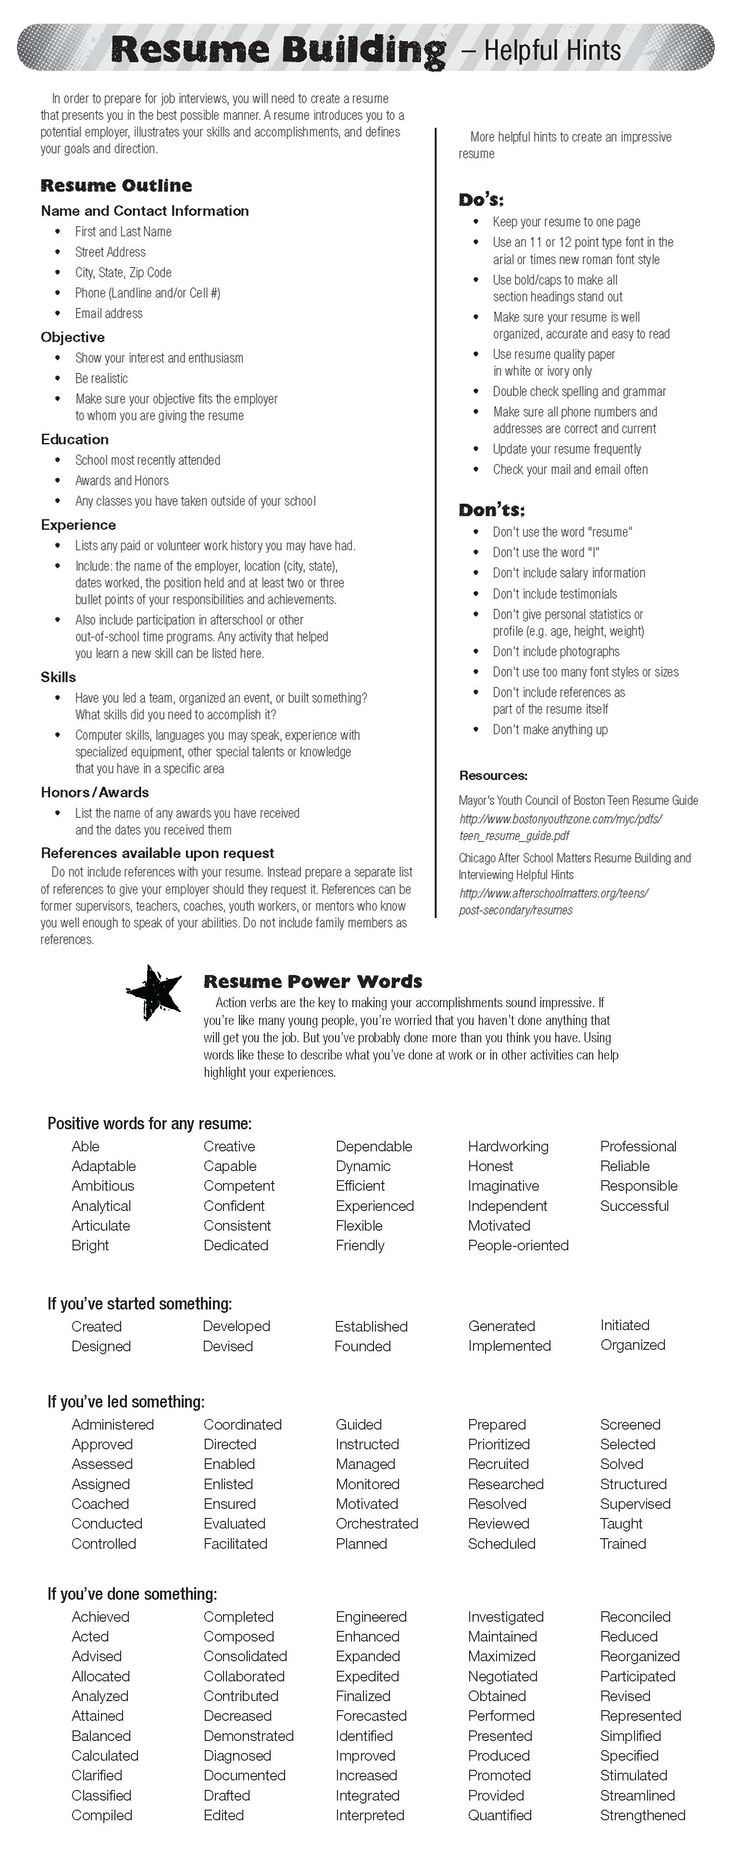 Opposenewapstandardsus  Winning  Ideas About Resume On Pinterest  Cv Format Resume Cv And  With Exquisite  Ideas About Resume On Pinterest  Cv Format Resume Cv And Resume Templates With Lovely Librarian Resume Examples Also Good Qualities For Resume In Addition Best Free Resume Site And What Is A Good Resume Title As Well As High School Resume Skills Additionally Military Transition Resume From Pinterestcom With Opposenewapstandardsus  Exquisite  Ideas About Resume On Pinterest  Cv Format Resume Cv And  With Lovely  Ideas About Resume On Pinterest  Cv Format Resume Cv And Resume Templates And Winning Librarian Resume Examples Also Good Qualities For Resume In Addition Best Free Resume Site From Pinterestcom